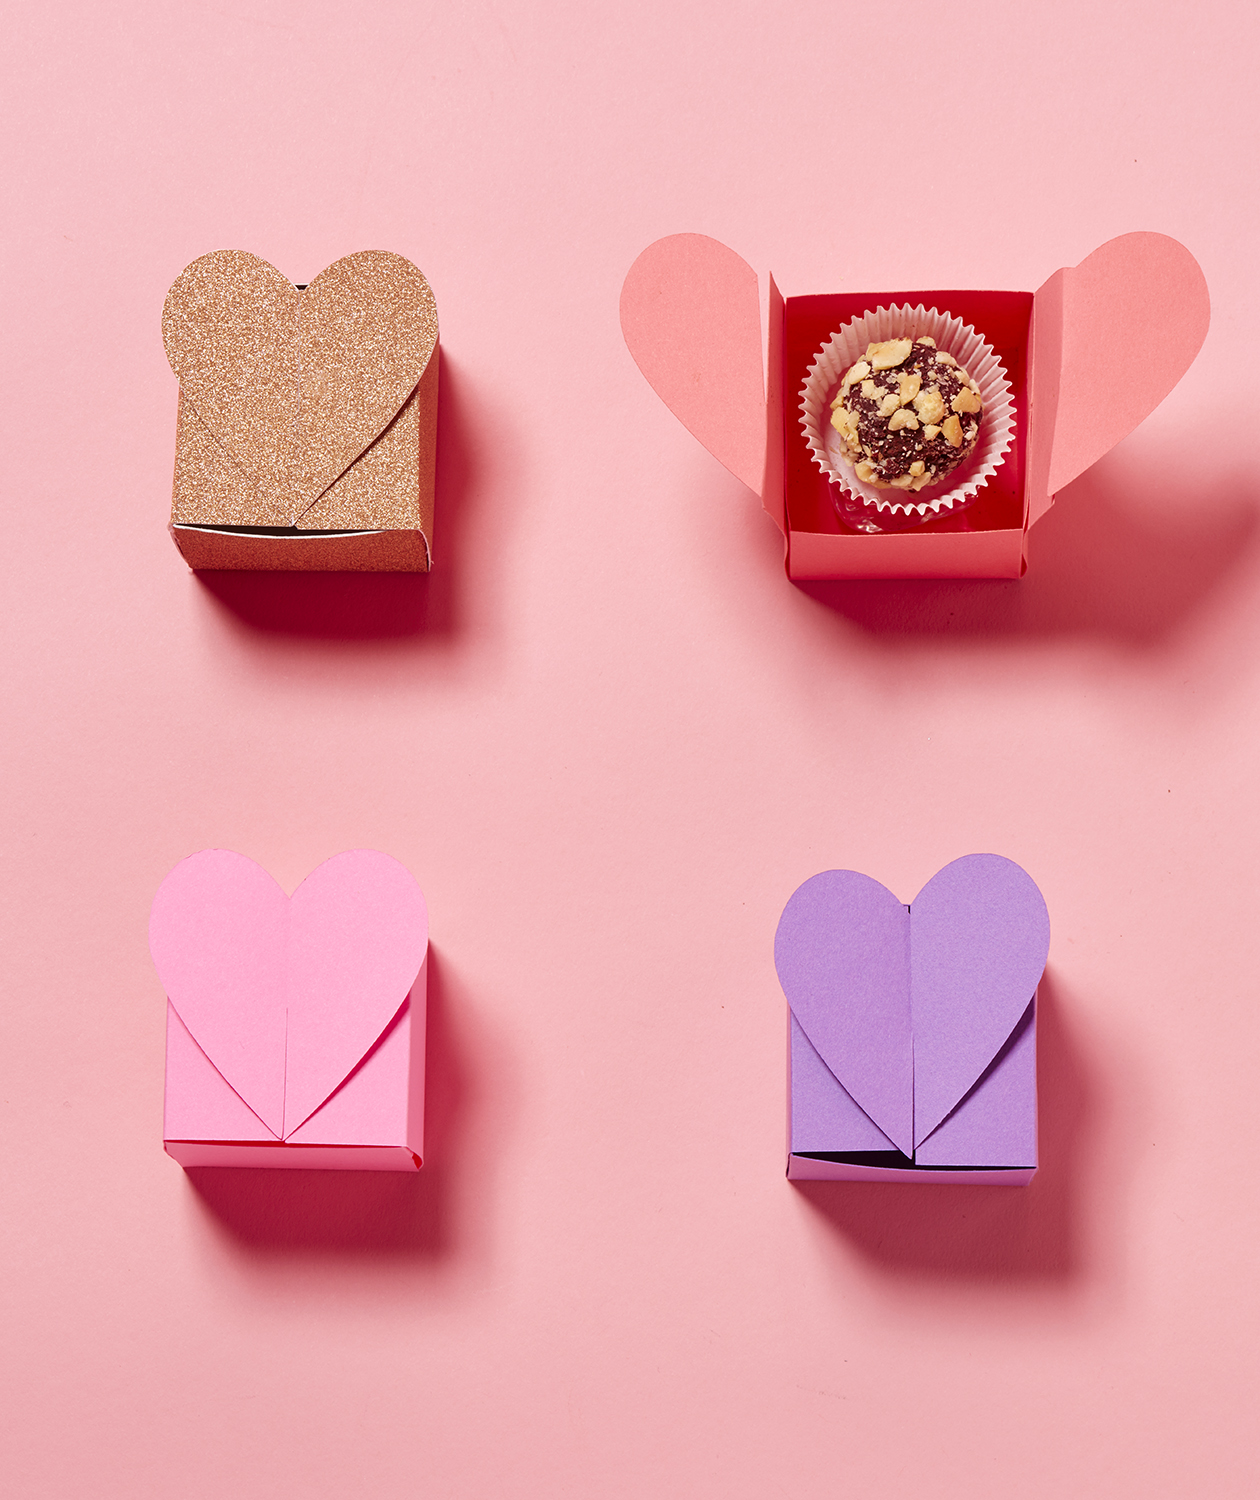 Heart Top Truffle Box